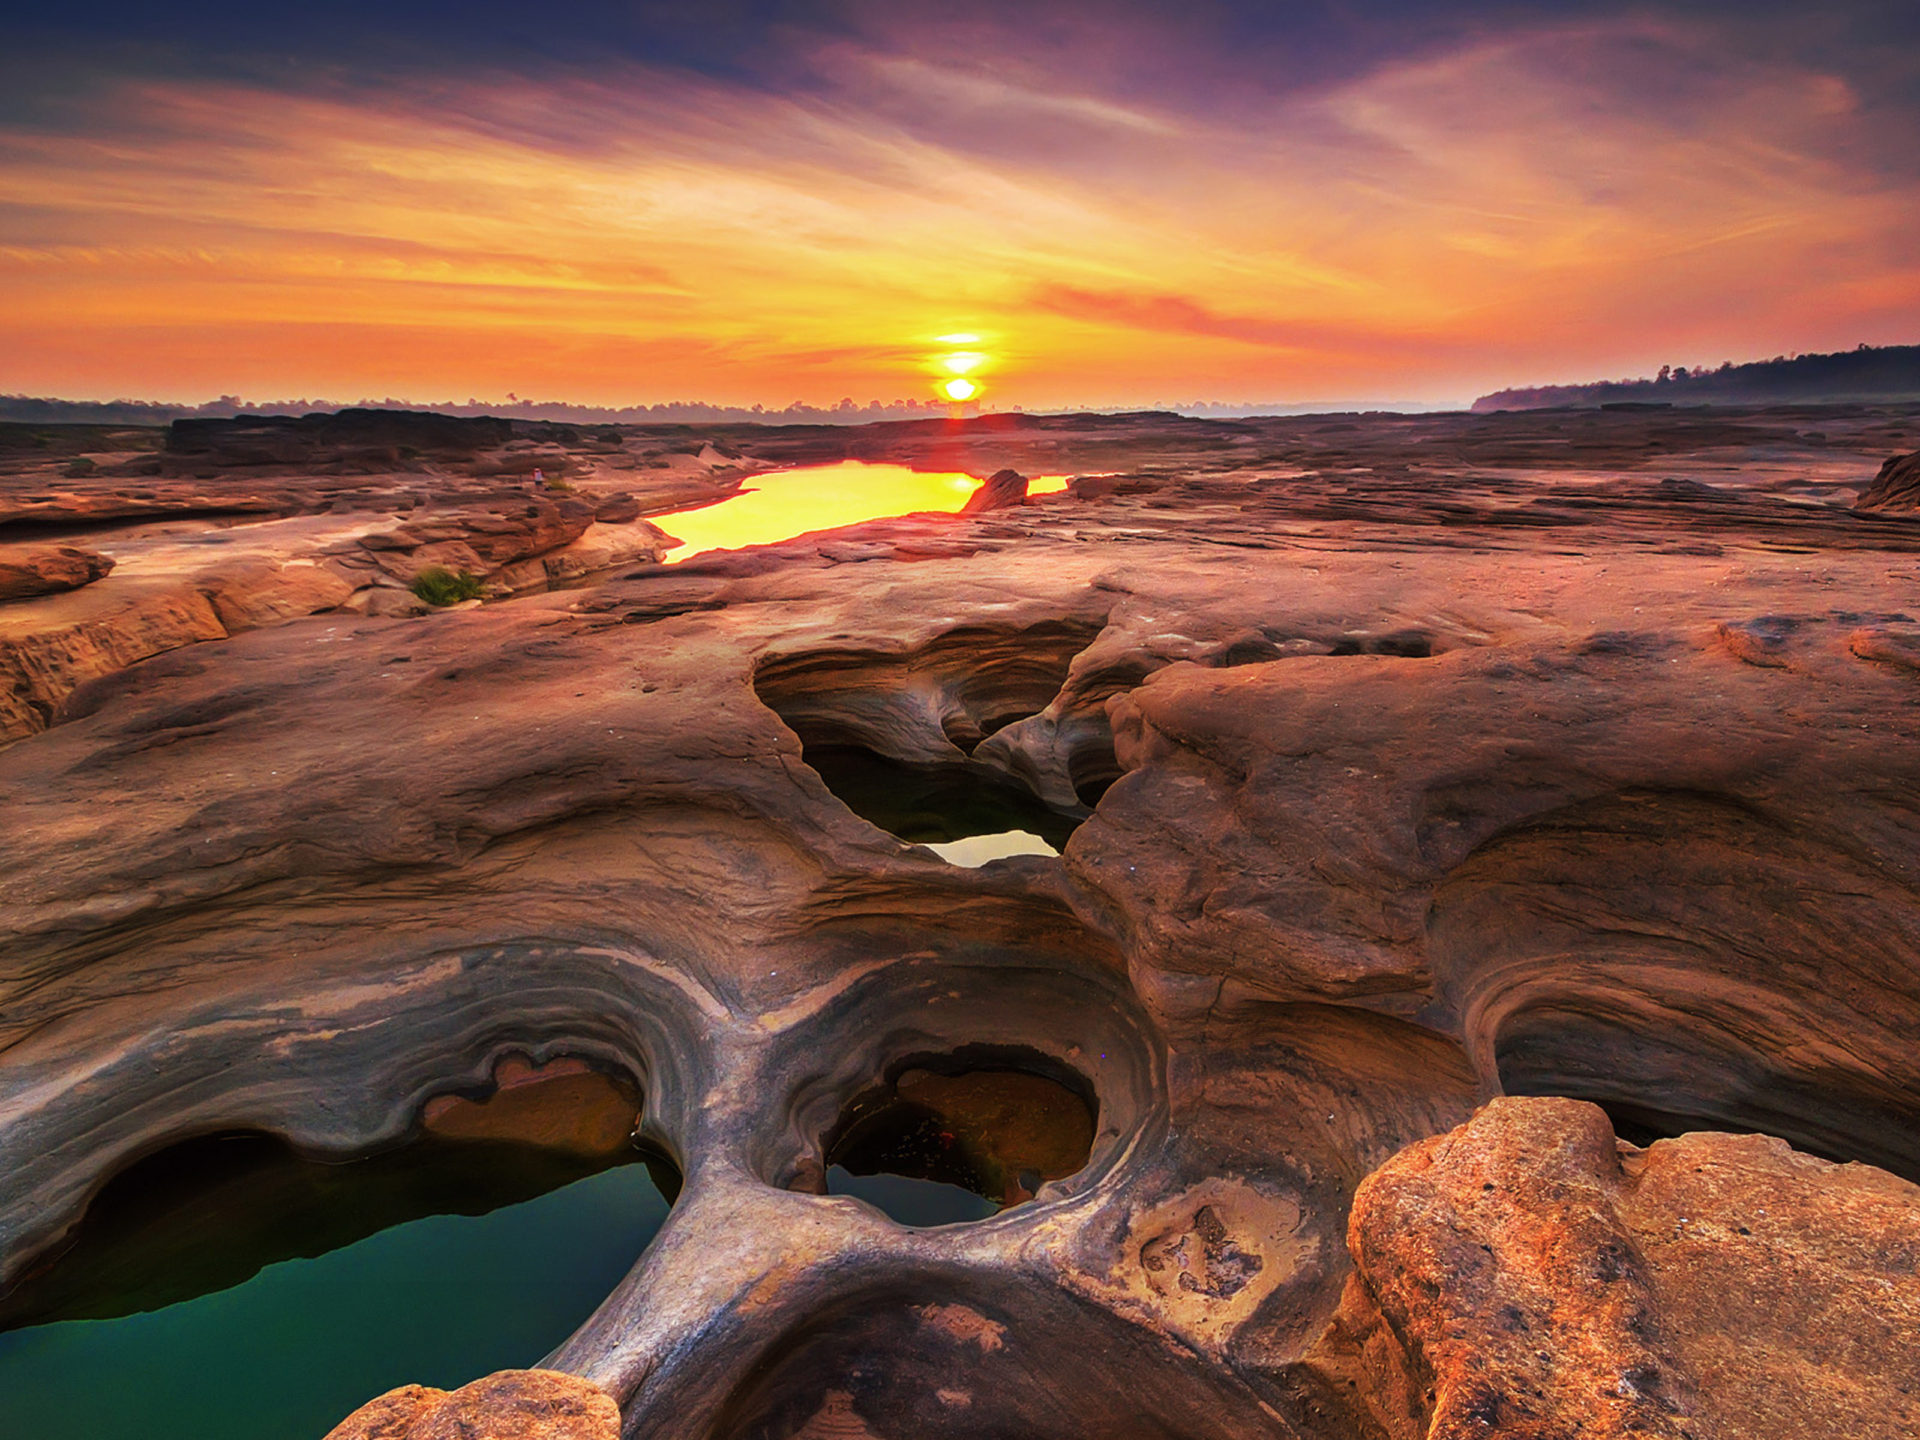 Hd Wallpaper 1920x1080 Beach Sunset Landscape Sam Phan Bok Grand Canyon Of Thailand